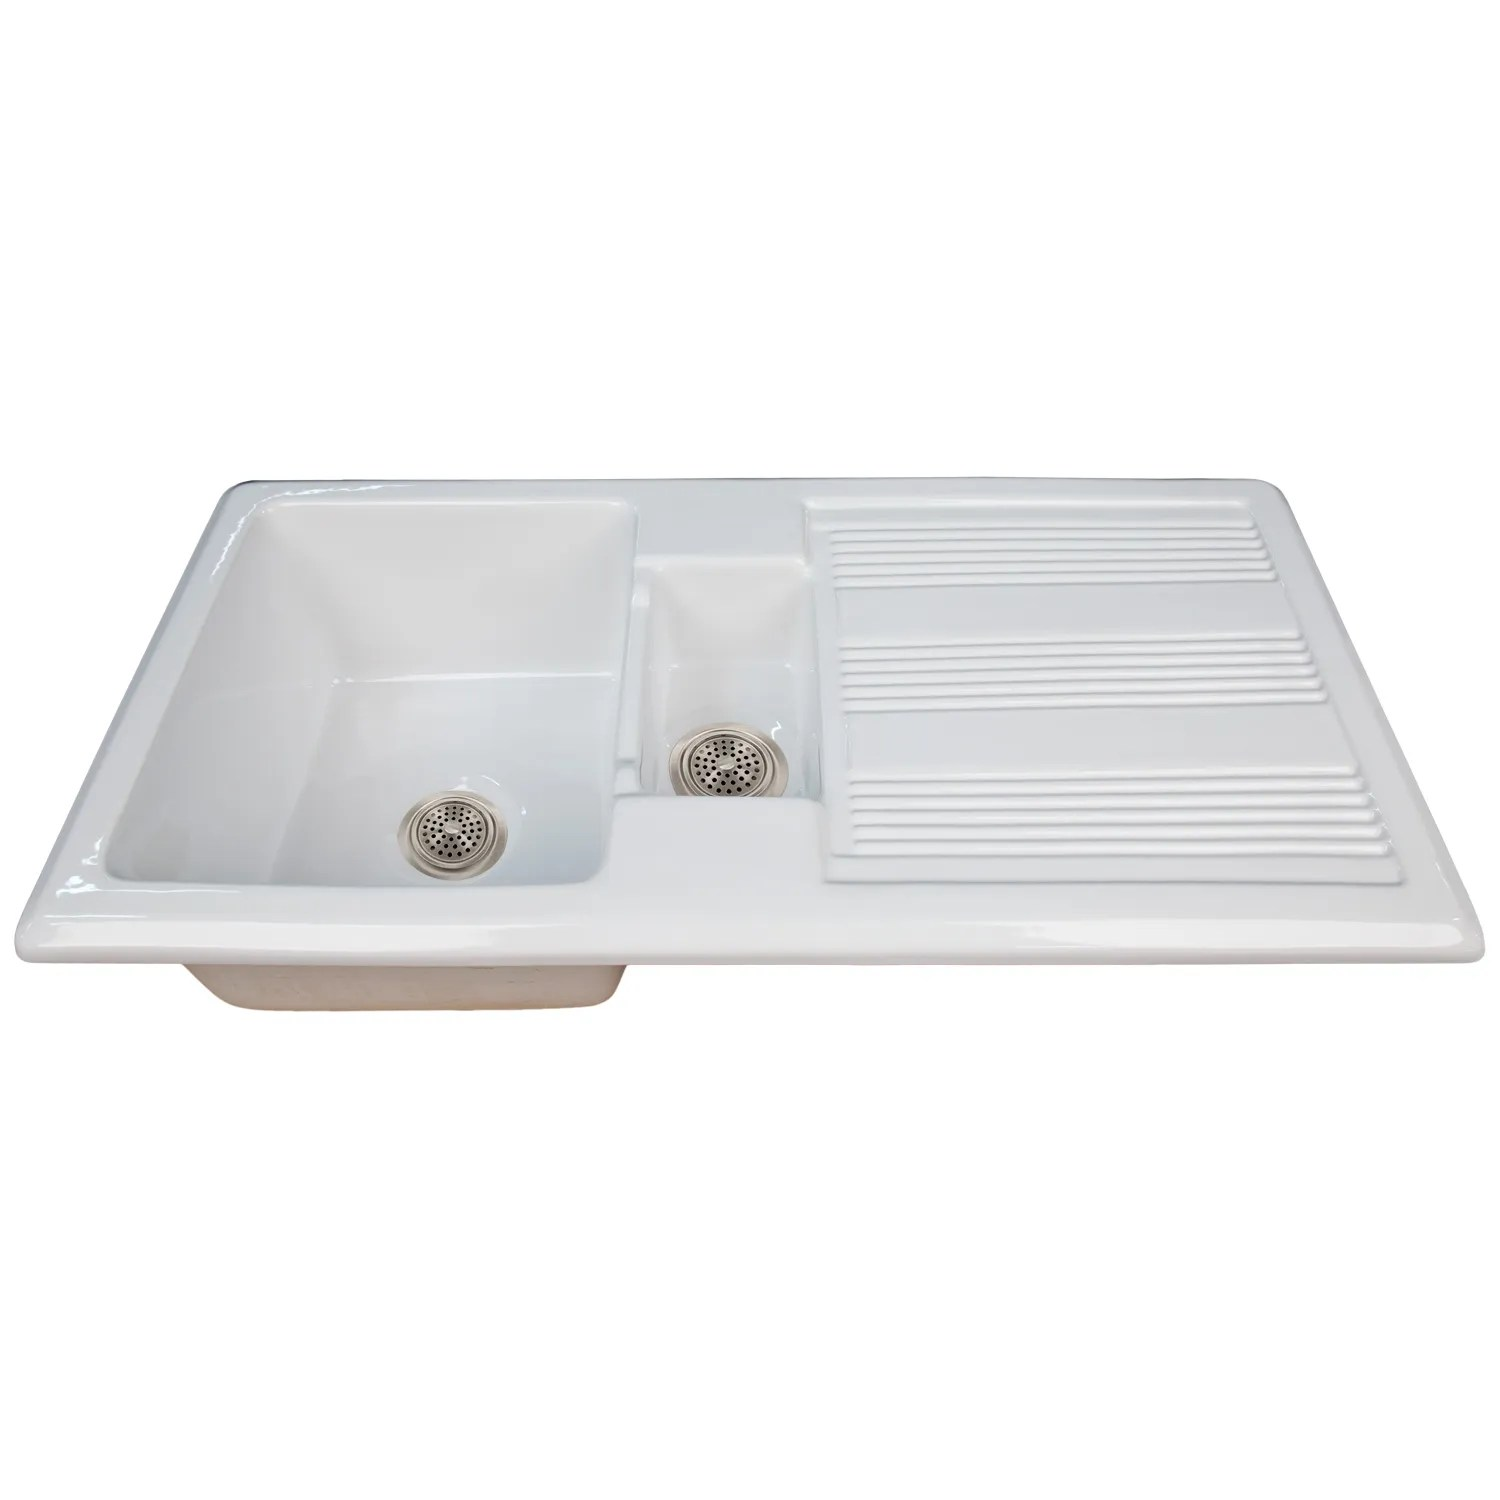 kitchen sinks with drainboards western decor signature hardware 40 quot nevan fireclay drop in sink